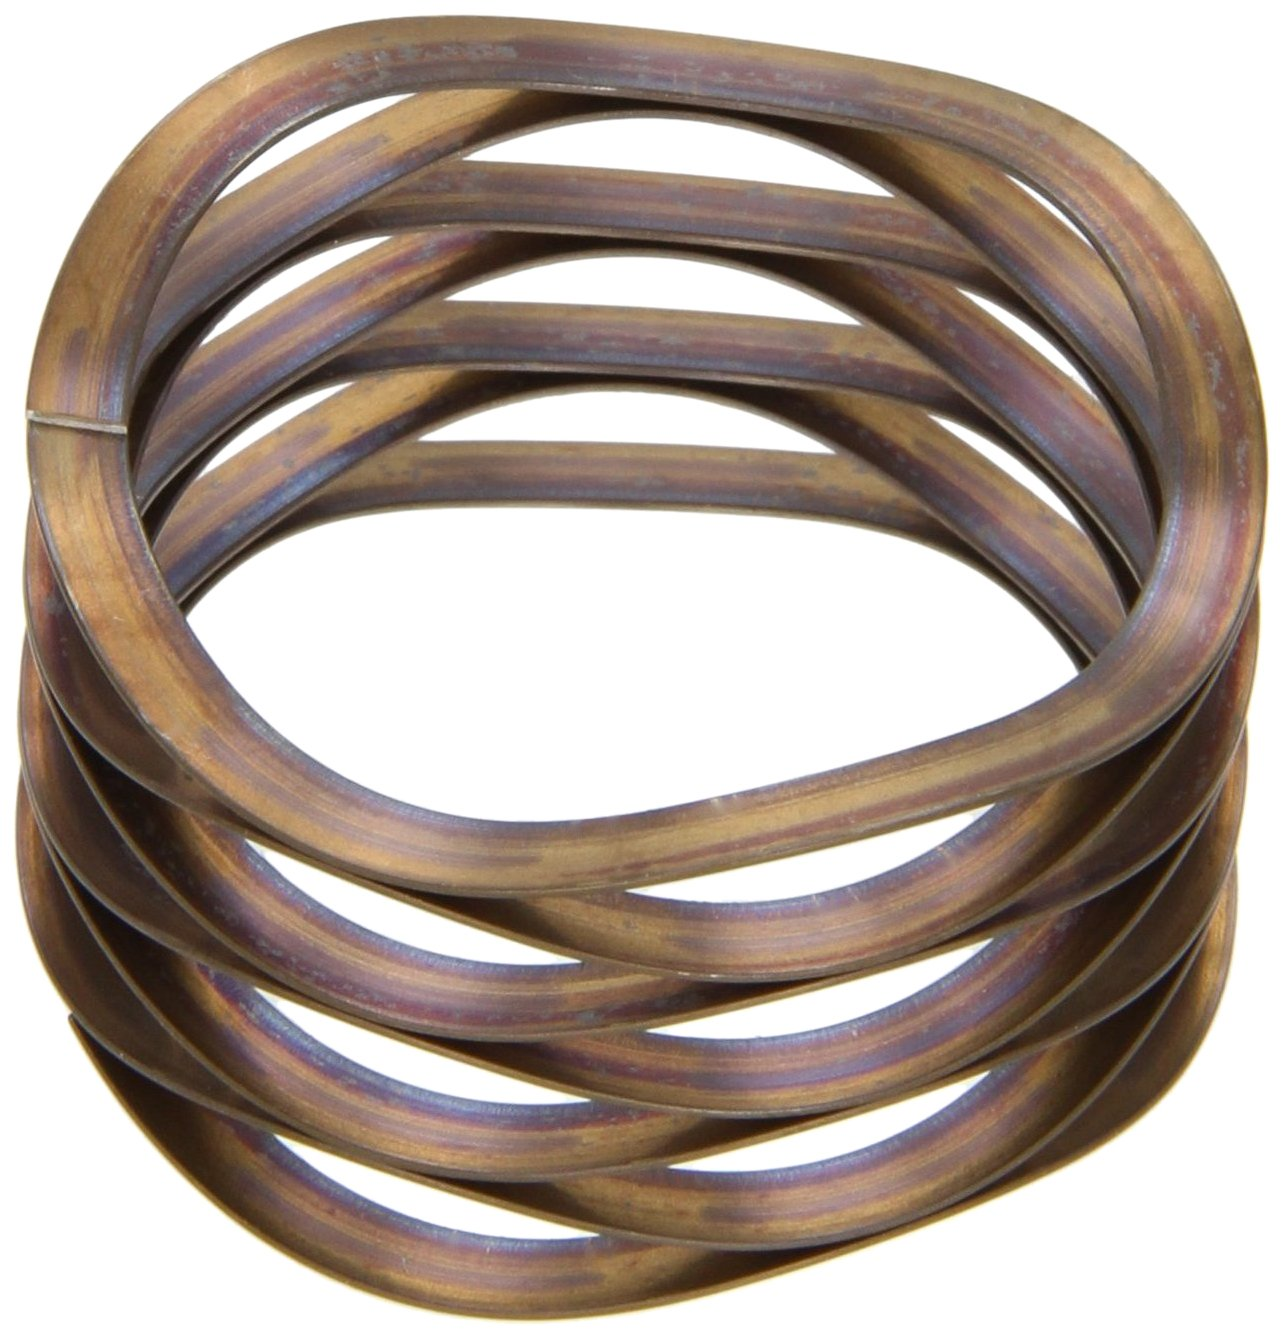 Multiwave Washers, Stainless Steel, Inch, 0.73'' ID, 1'' OD, 0.015'' Thick, 95lbs/in Spring Rate, 25lbs Load Capacity (Pack of 5)